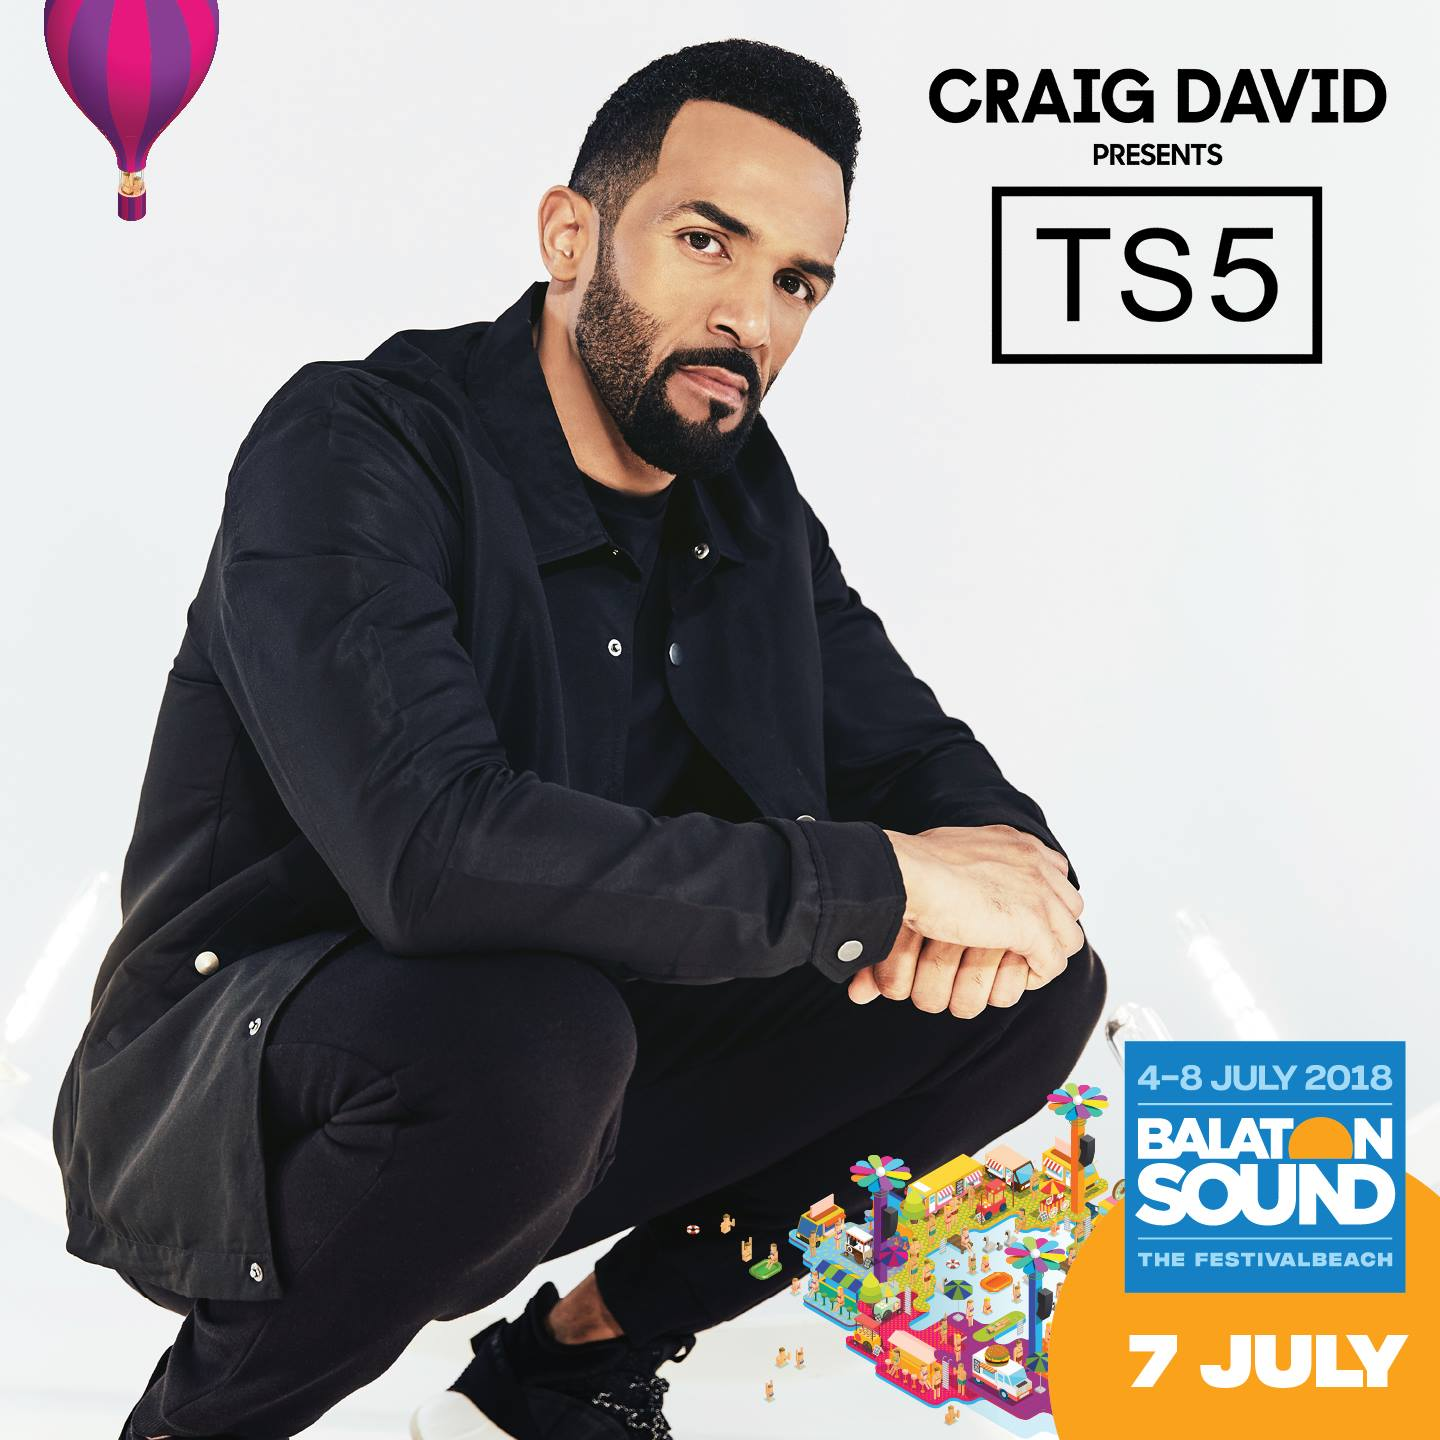 Craig David koncert - Balaton Sound 2018